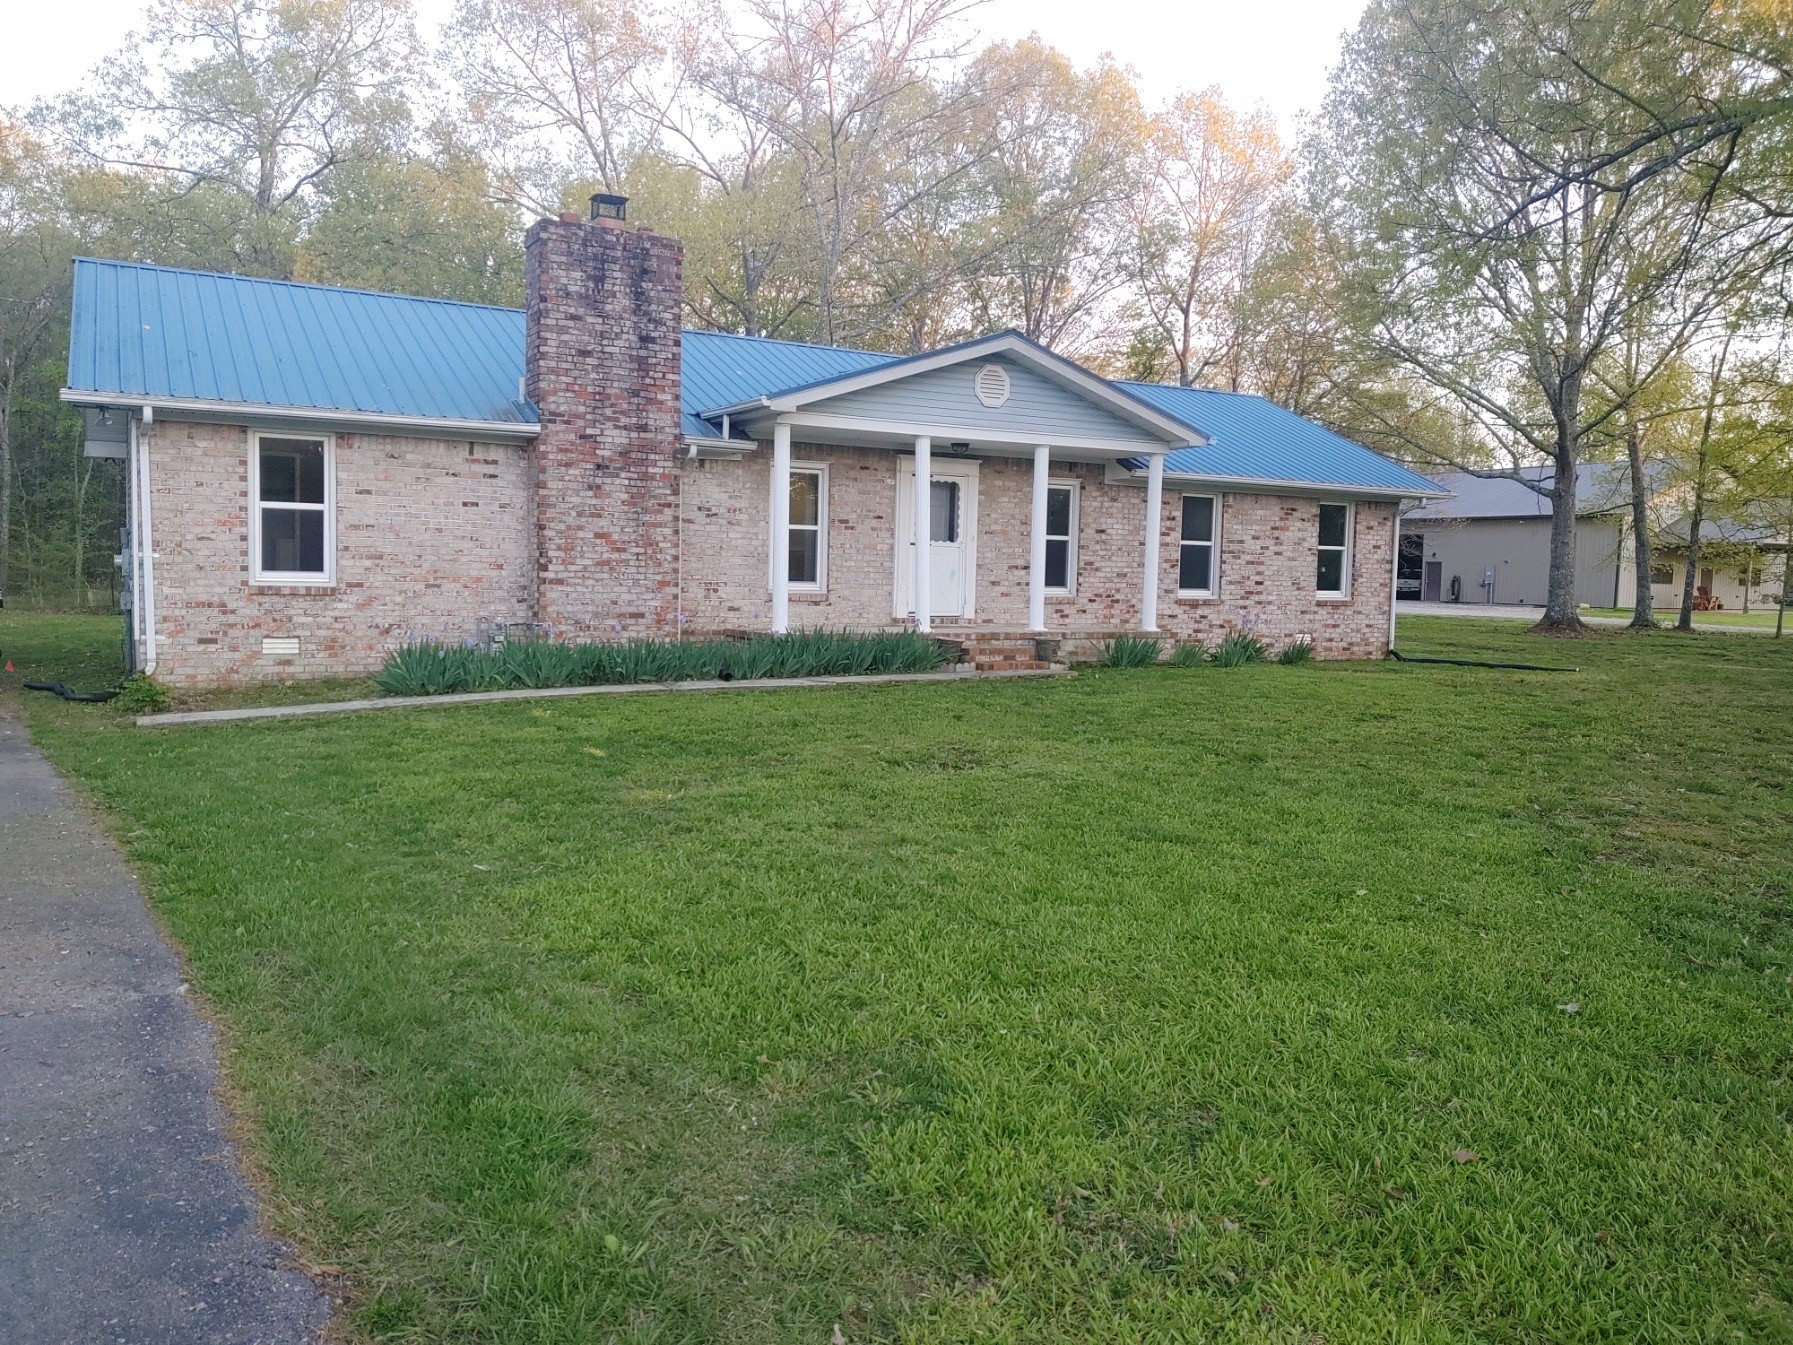 2689 Cat Creek Rd, Manchester, TN 37355 - Manchester, TN real estate listing